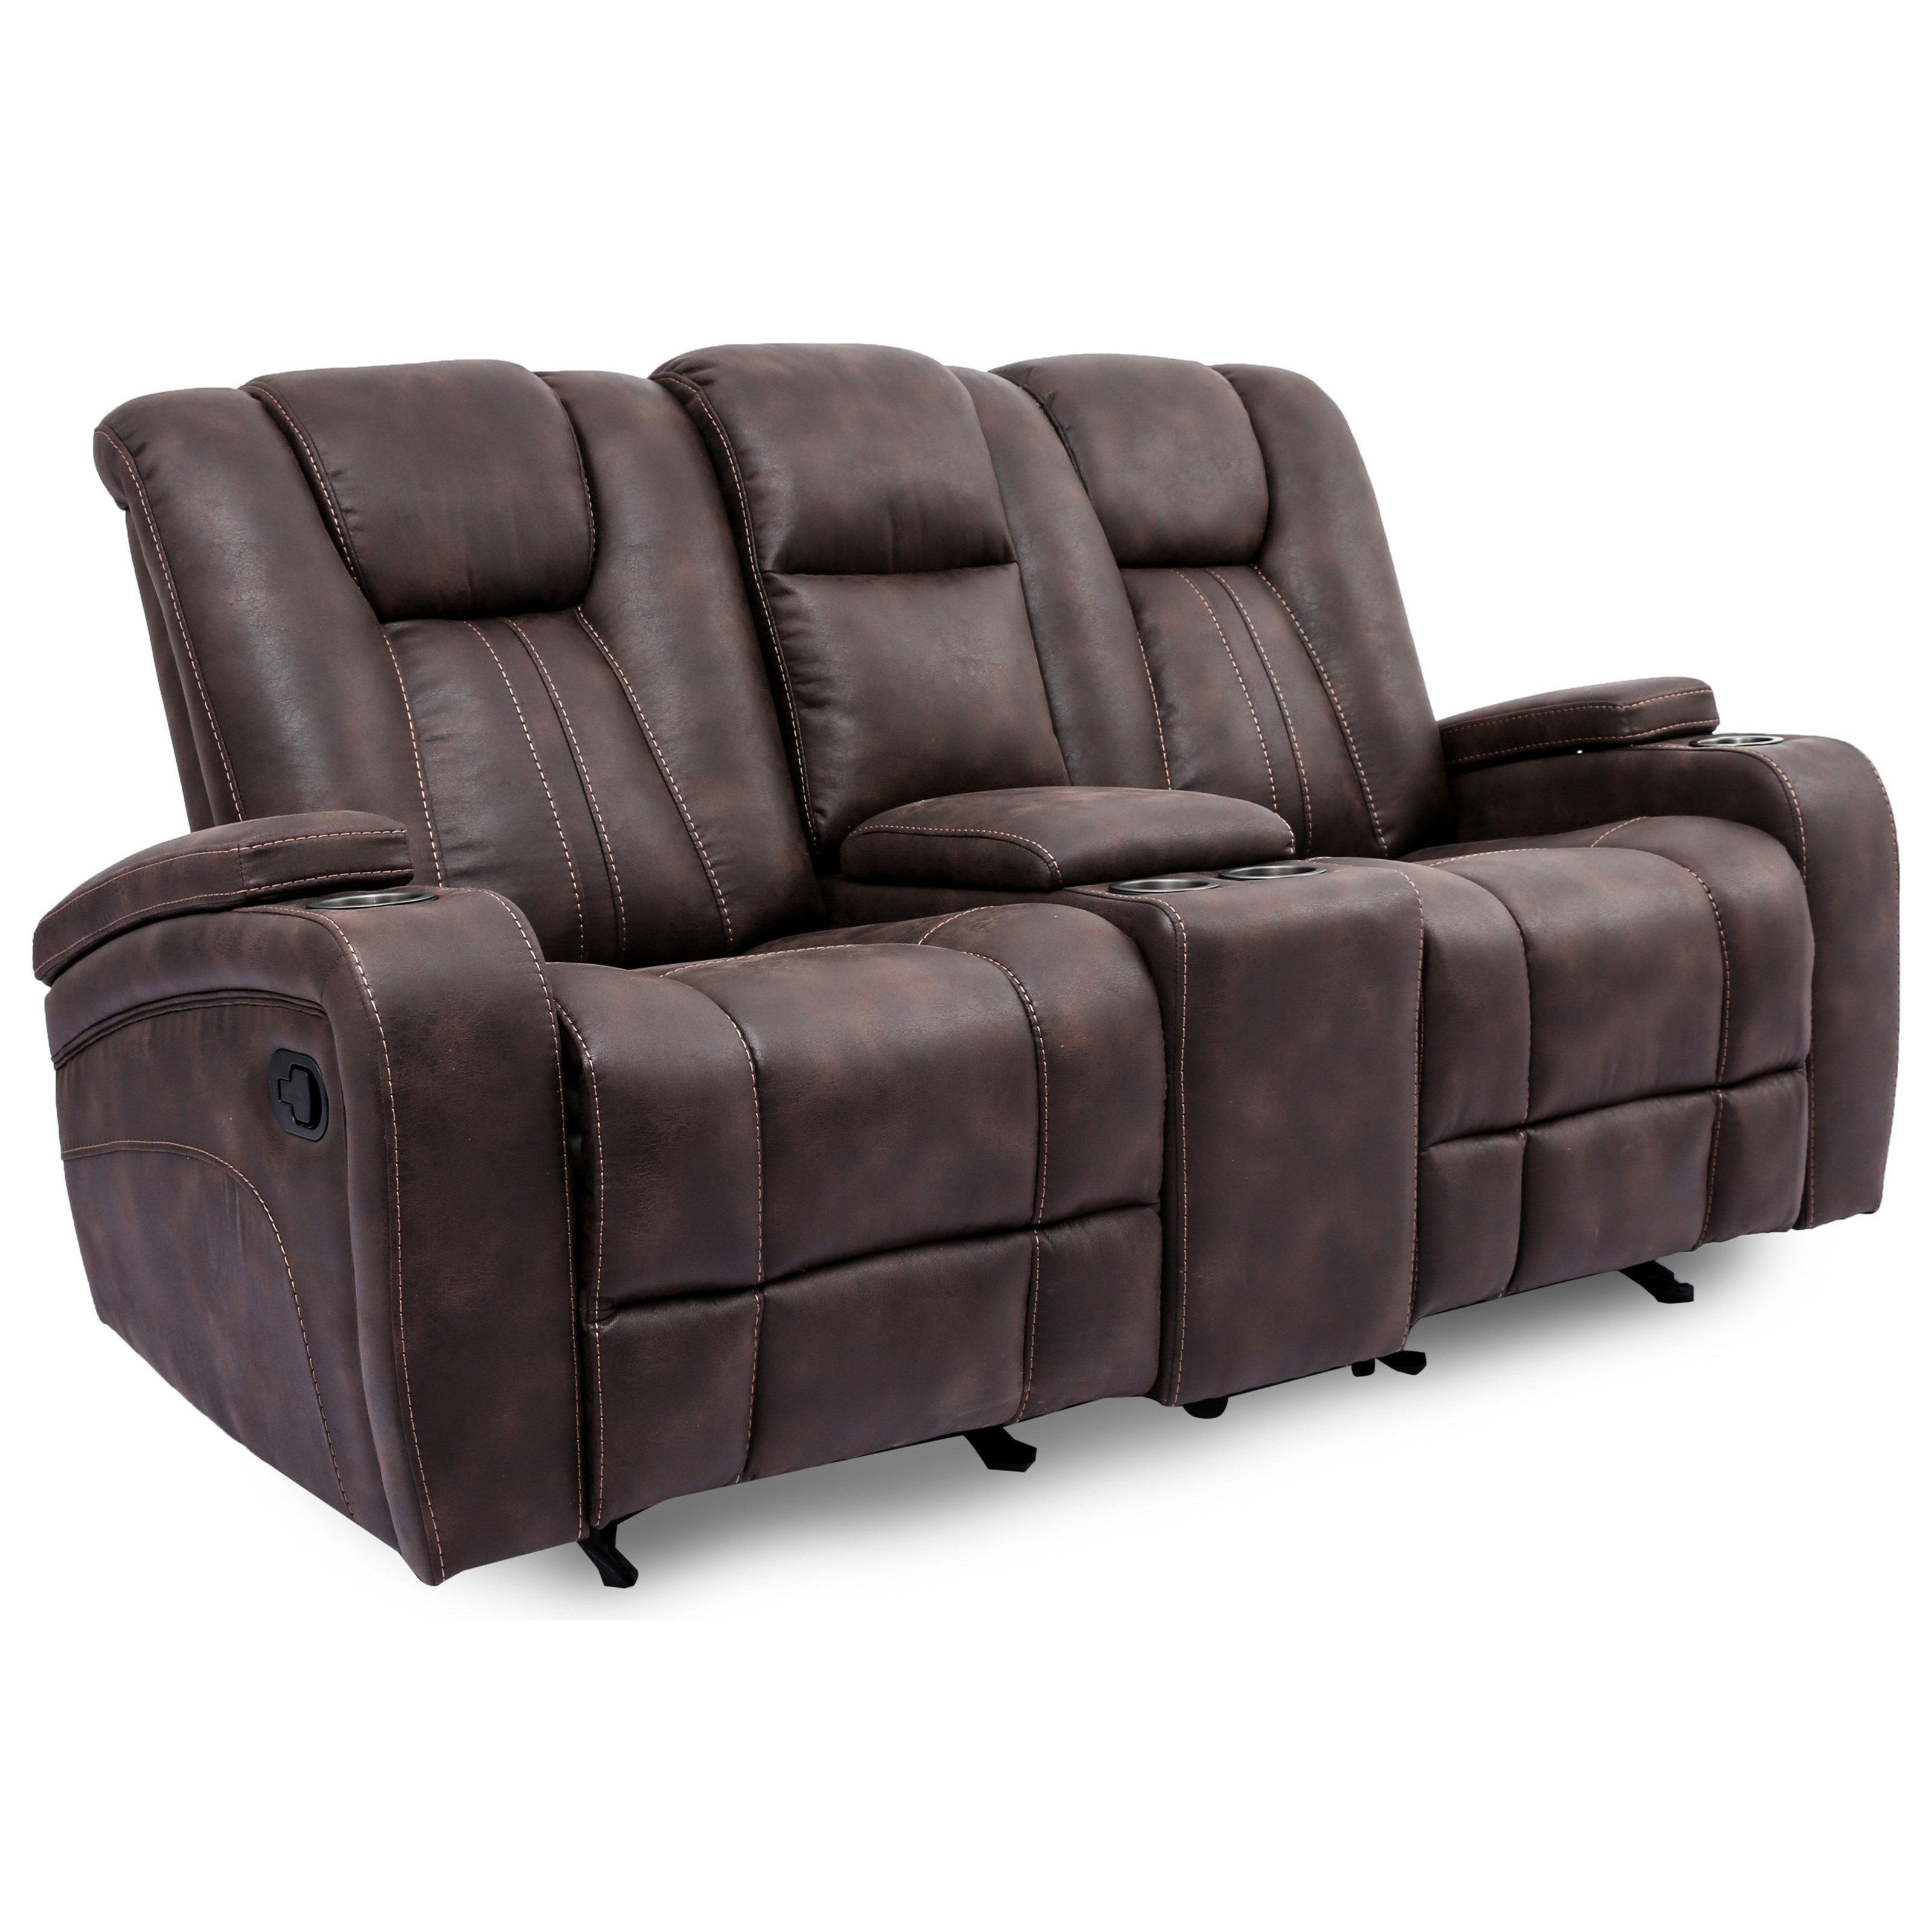 9990M Glider Reclining LoveSeat with Console by Cheers at Del Sol Furniture